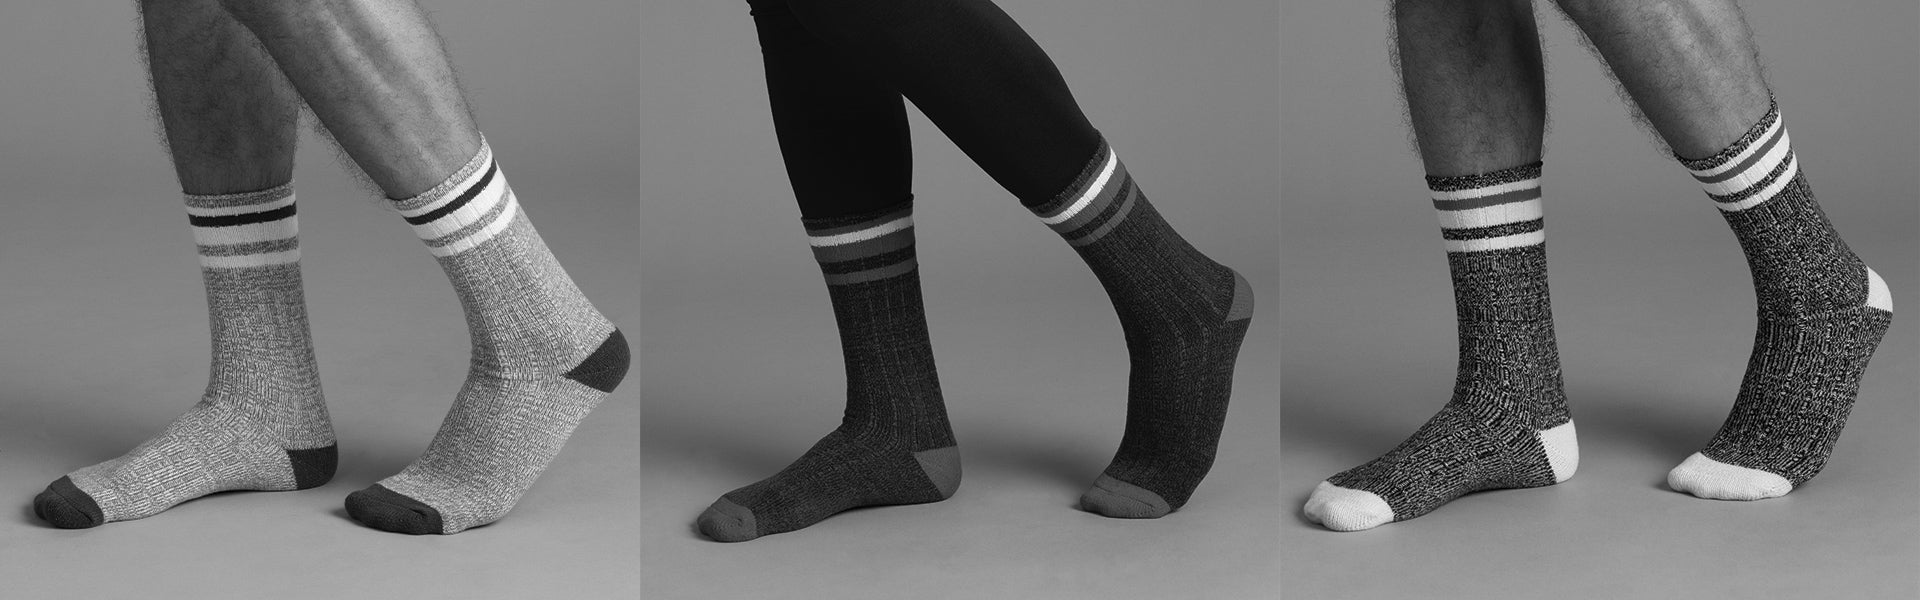 Watson's men thermal socks warm